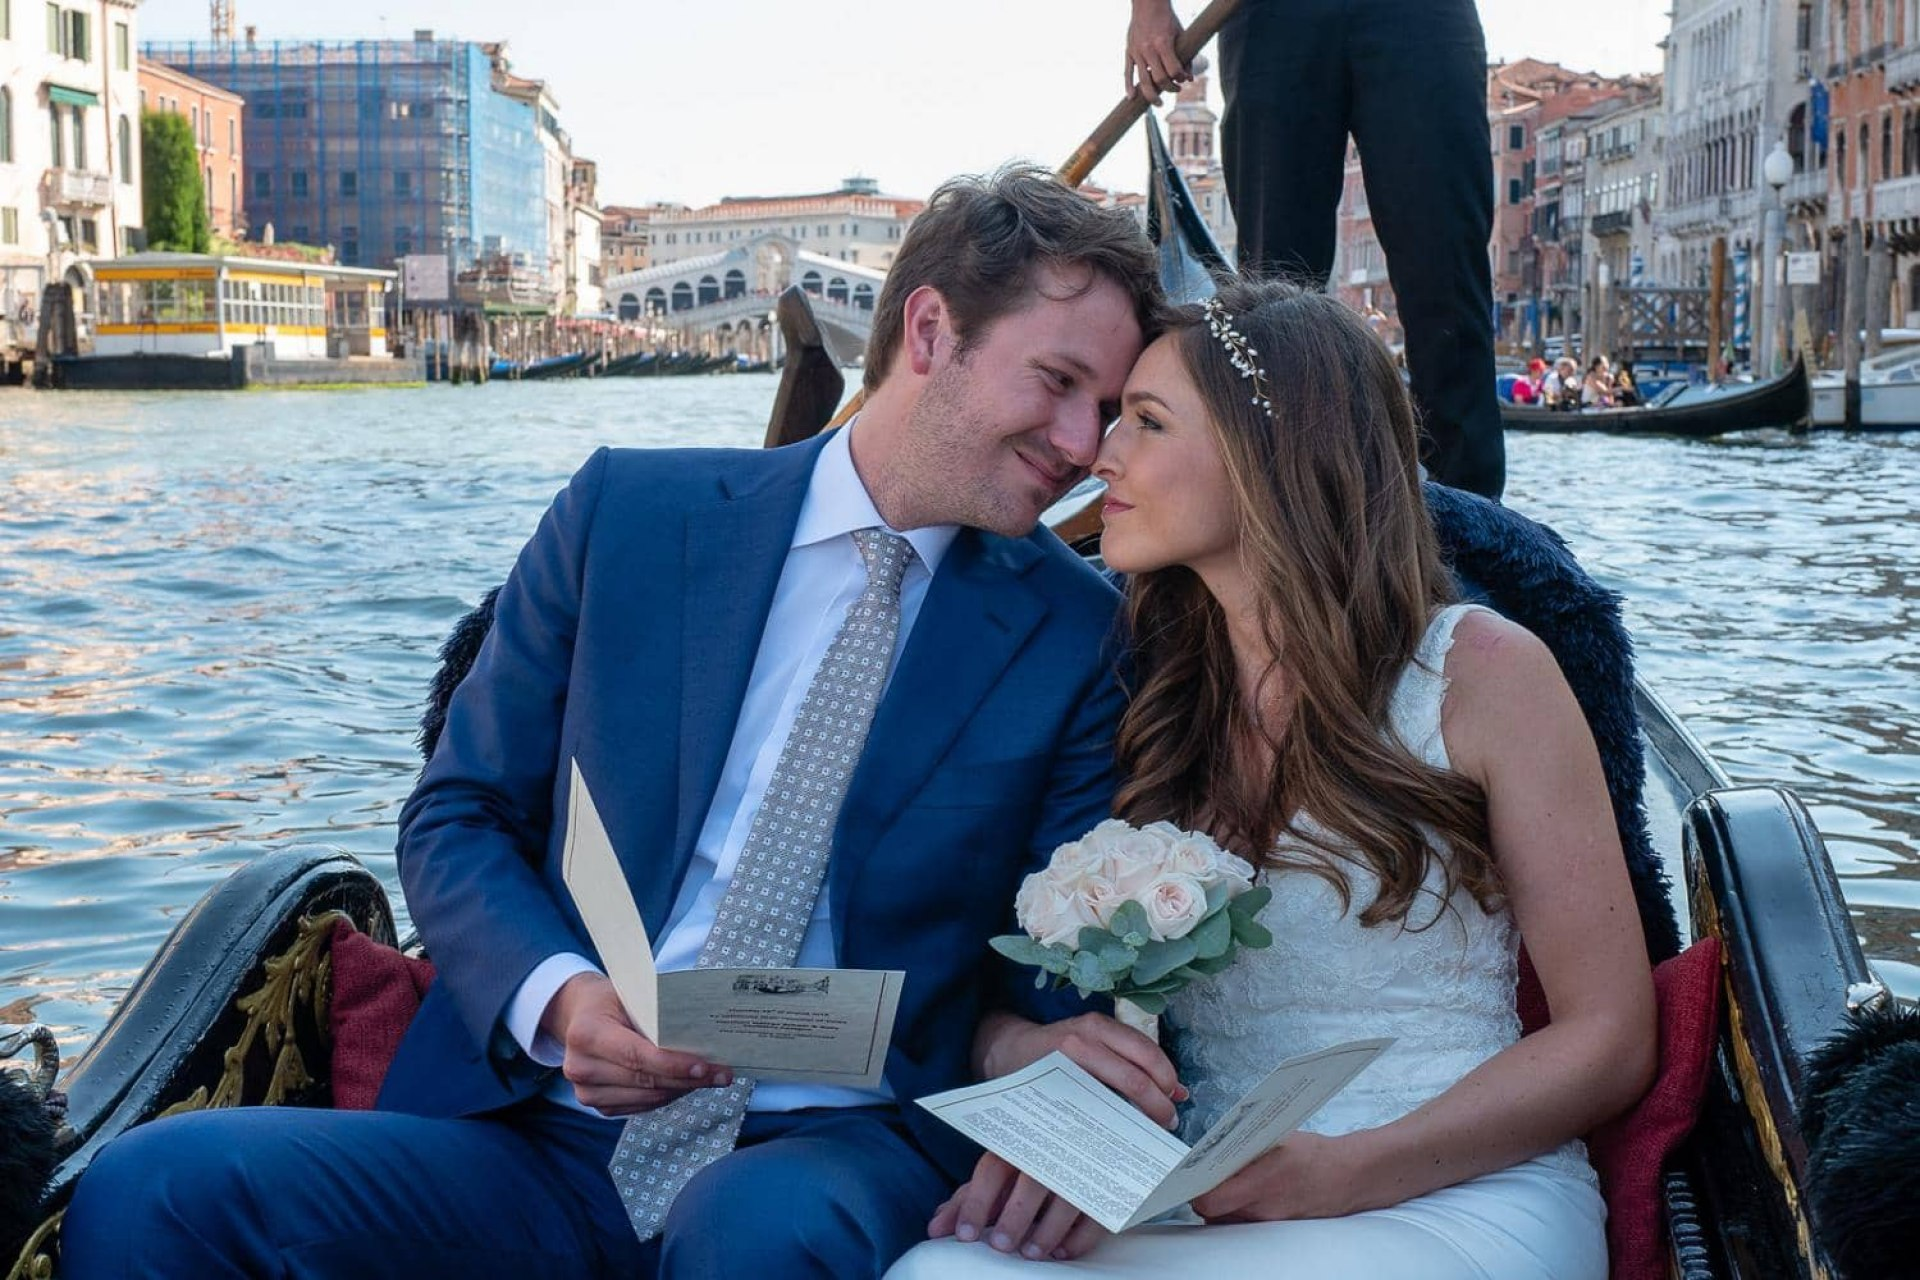 Renew Your Wedding Vows on a Venetian Gondola